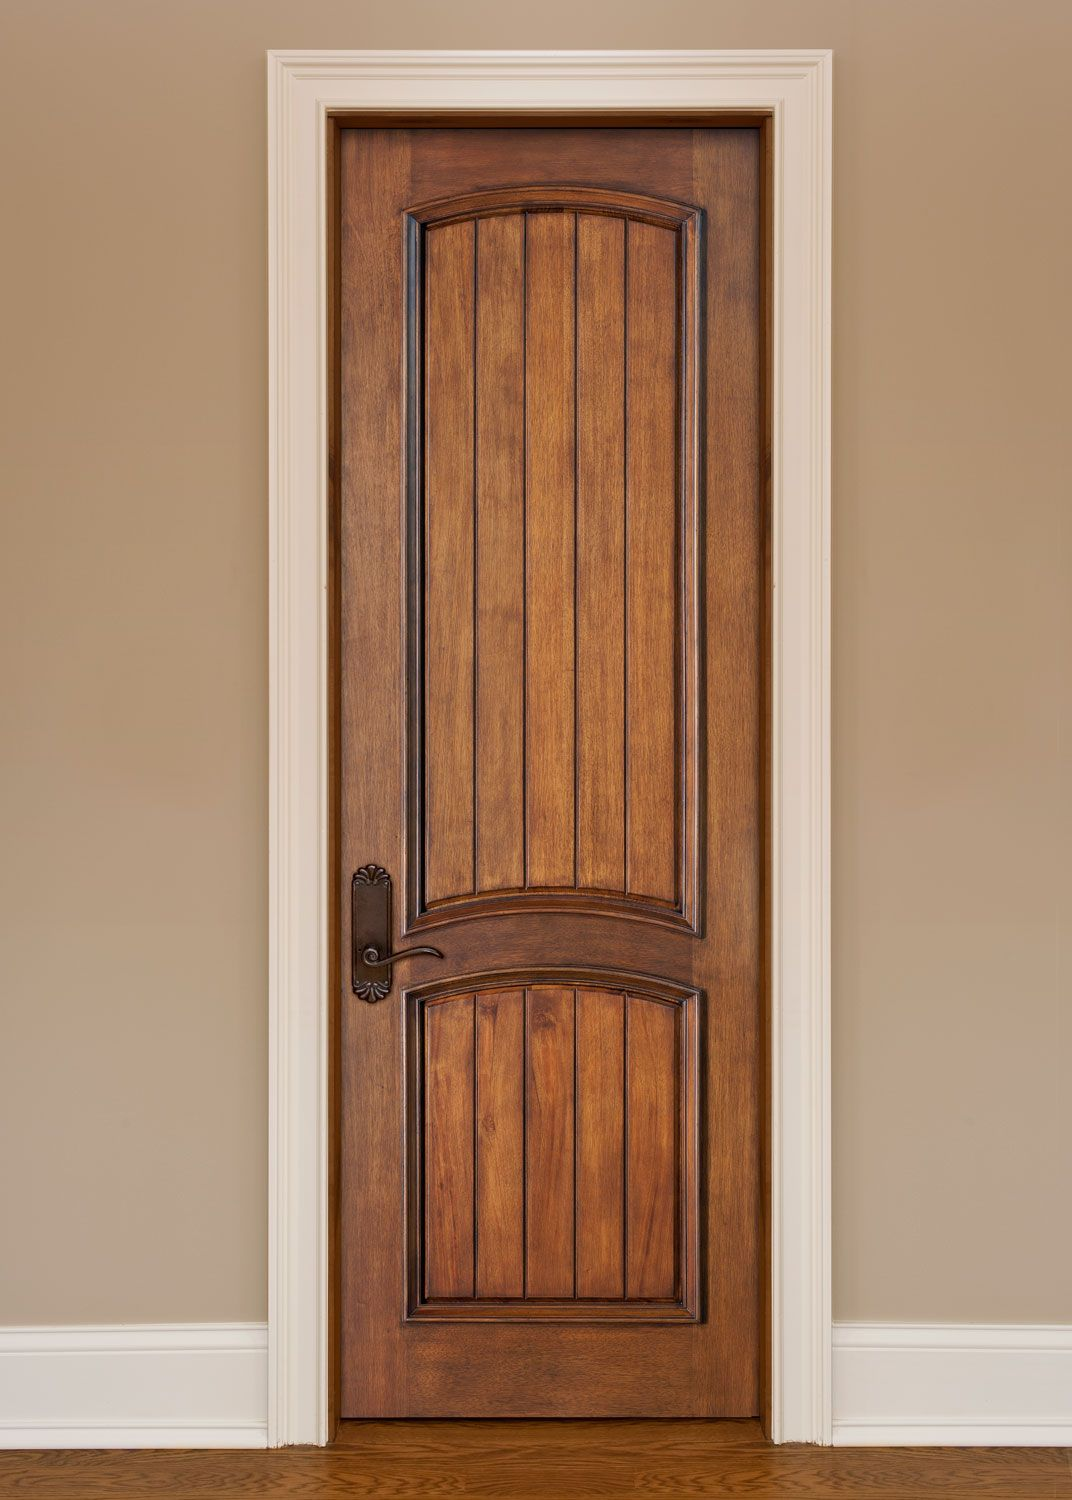 Artisan Interior Custom Door Solid Single Mahogany Wood Interior Door With  V Grooves Raised Moulding And